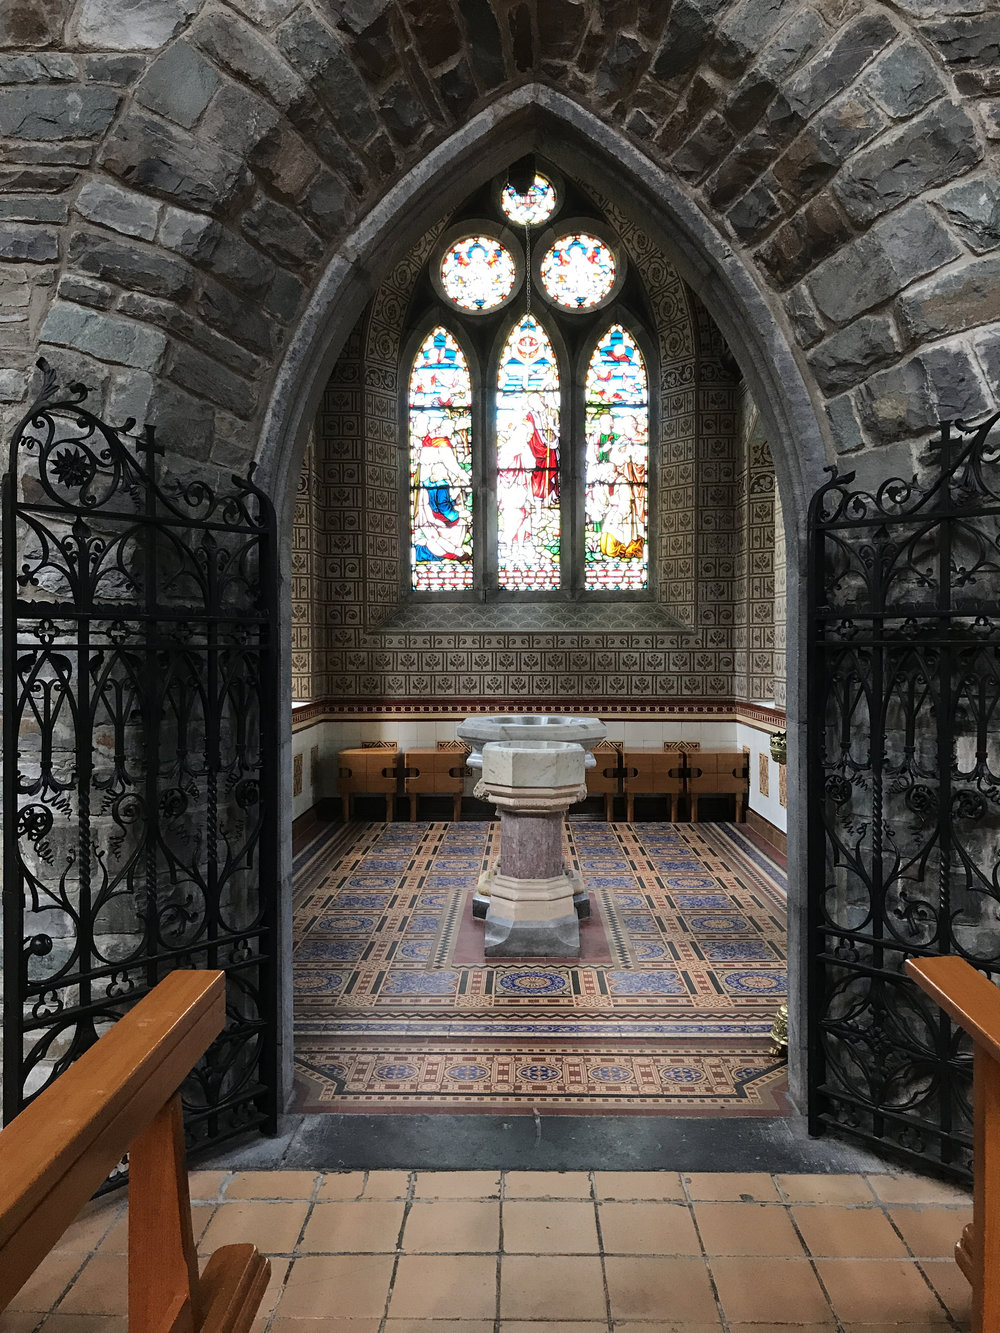 St. Mary's Cathedral, Killarney